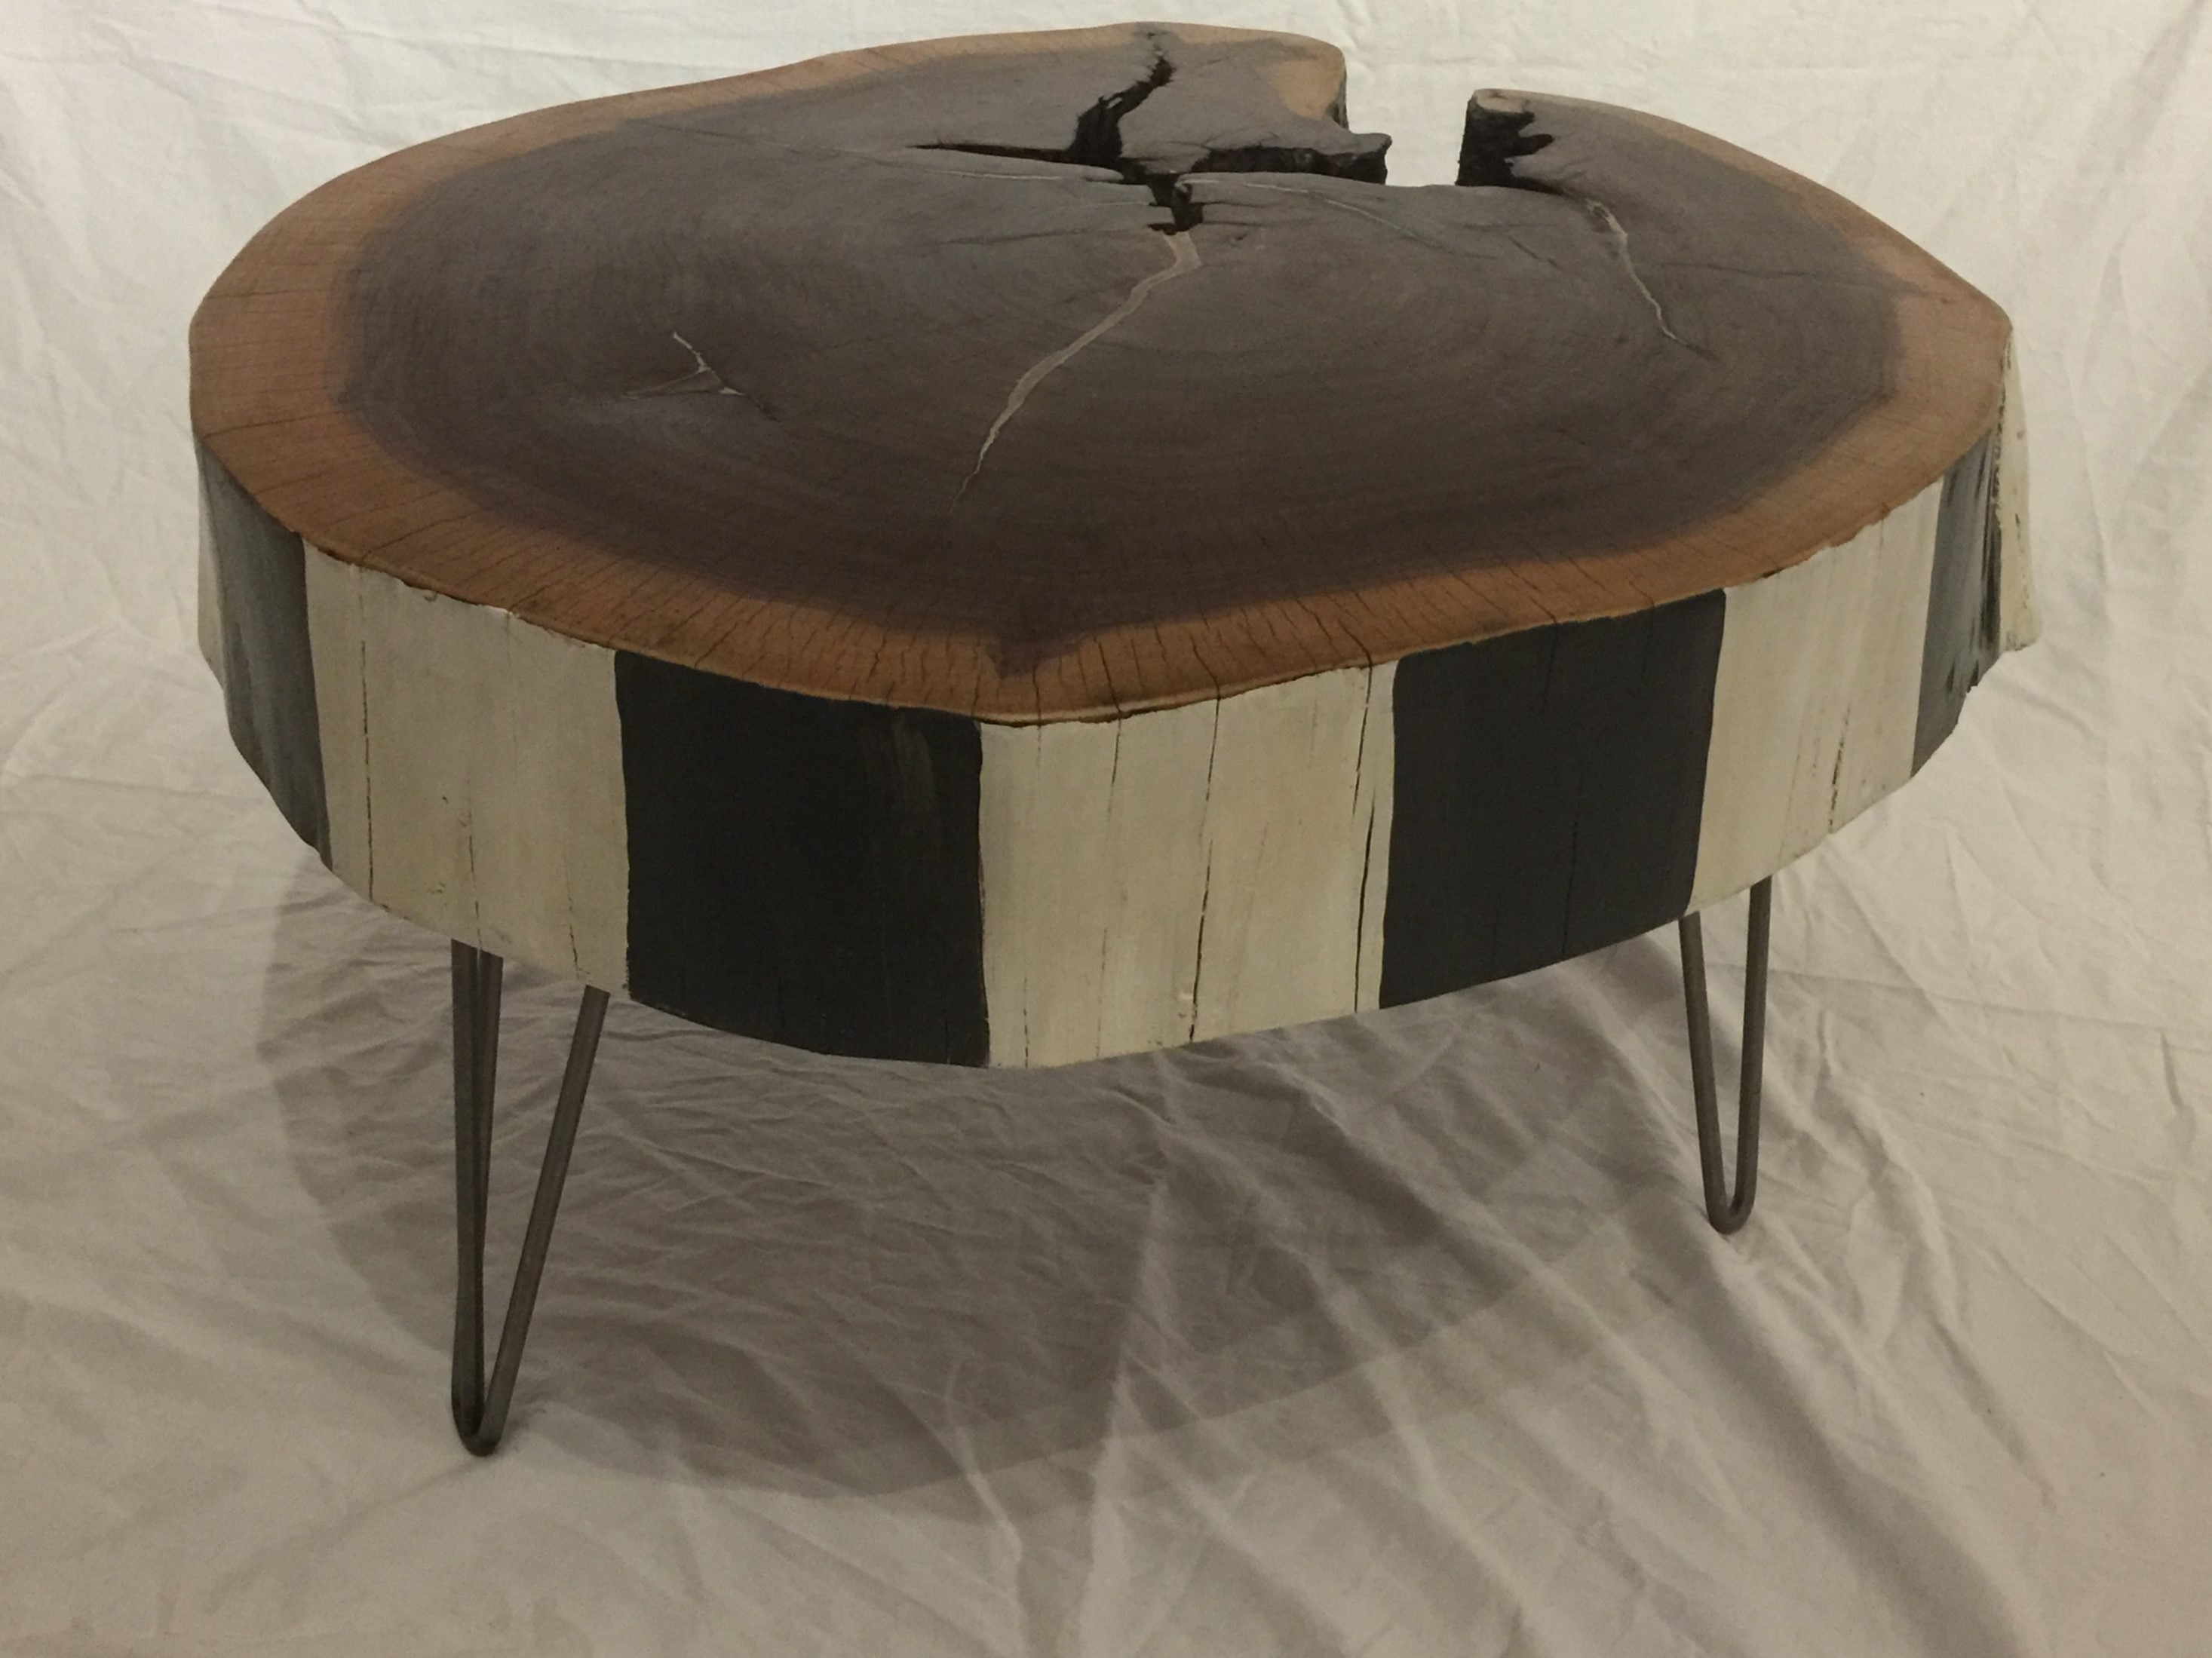 Walnut Slab Coffee Table The Camptons Art And Design Studio And Gallery